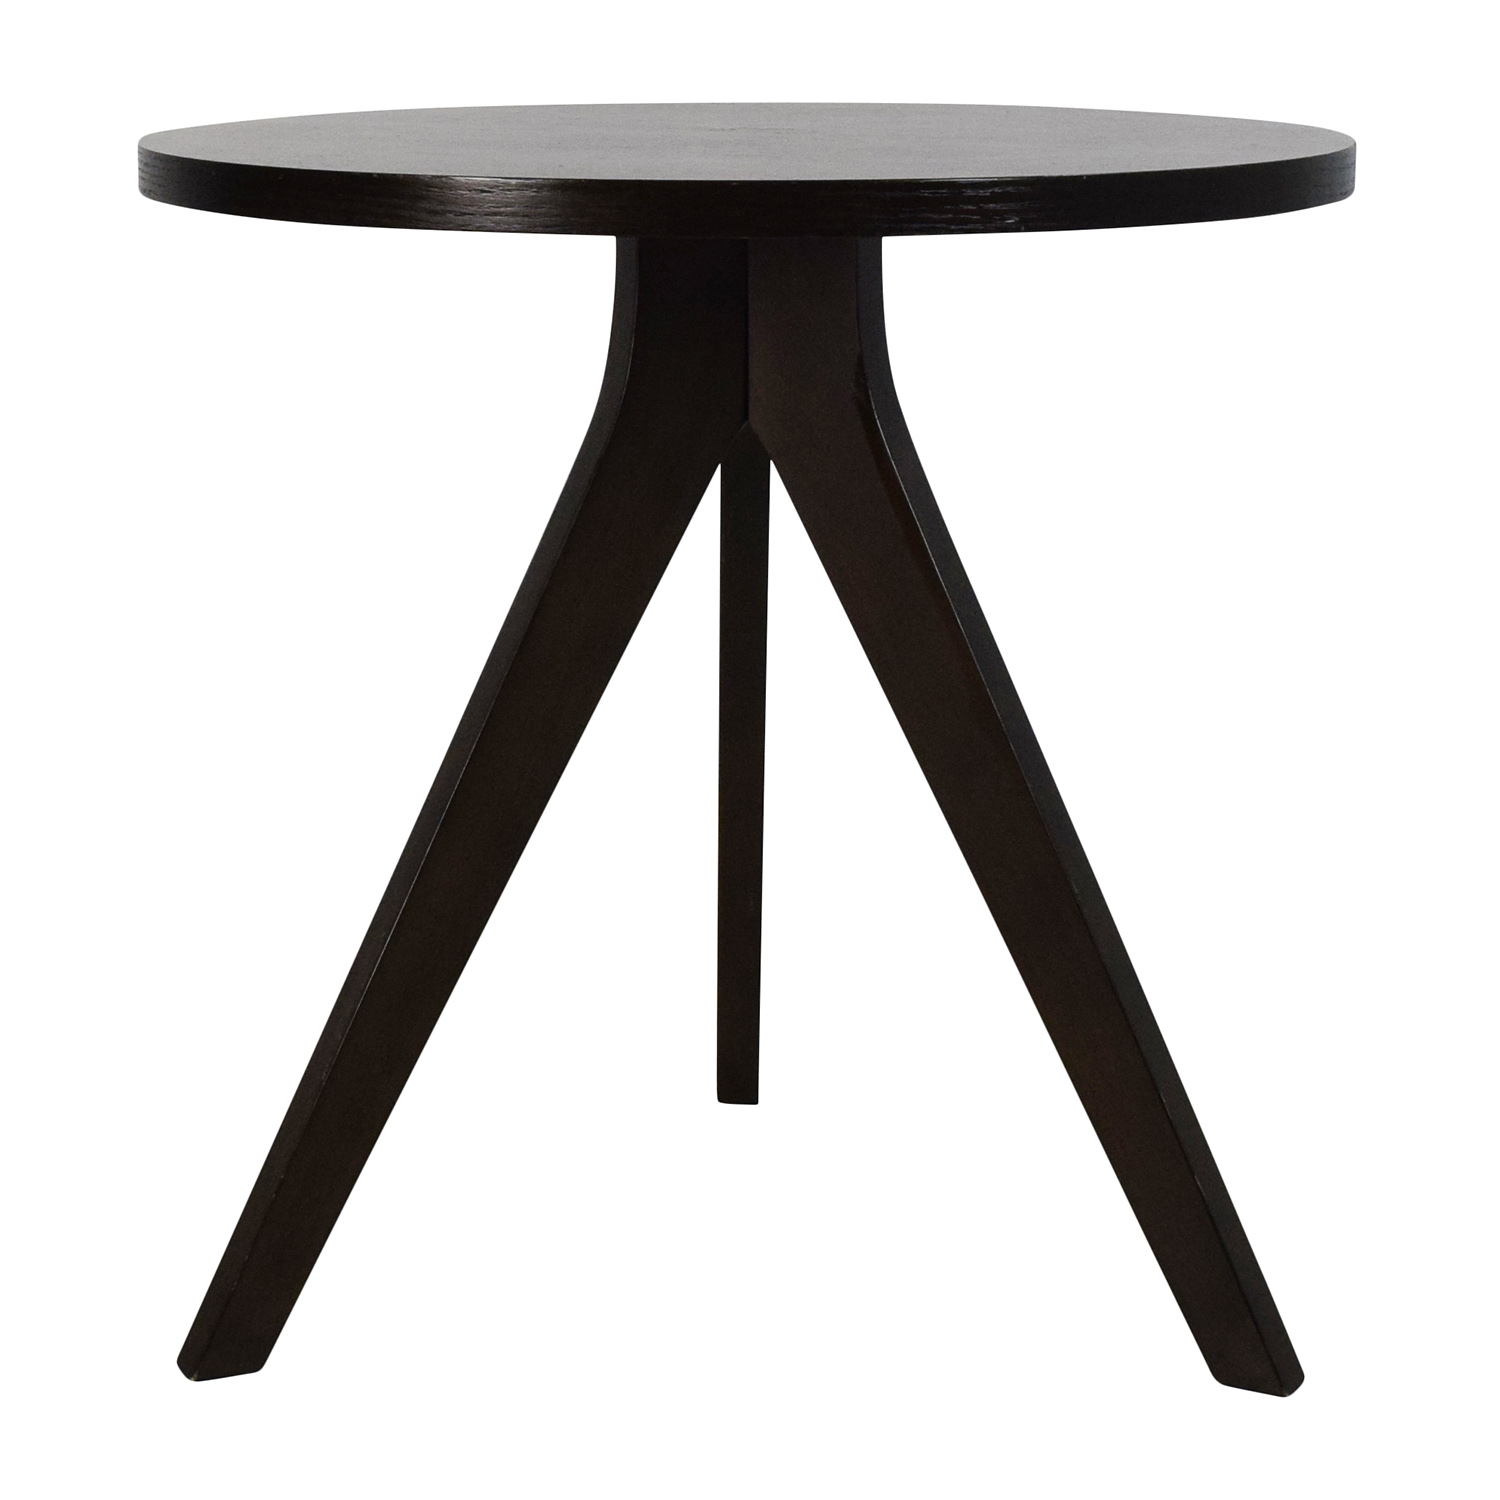 West Elm West Elm Tripod Side Table Dark Brown